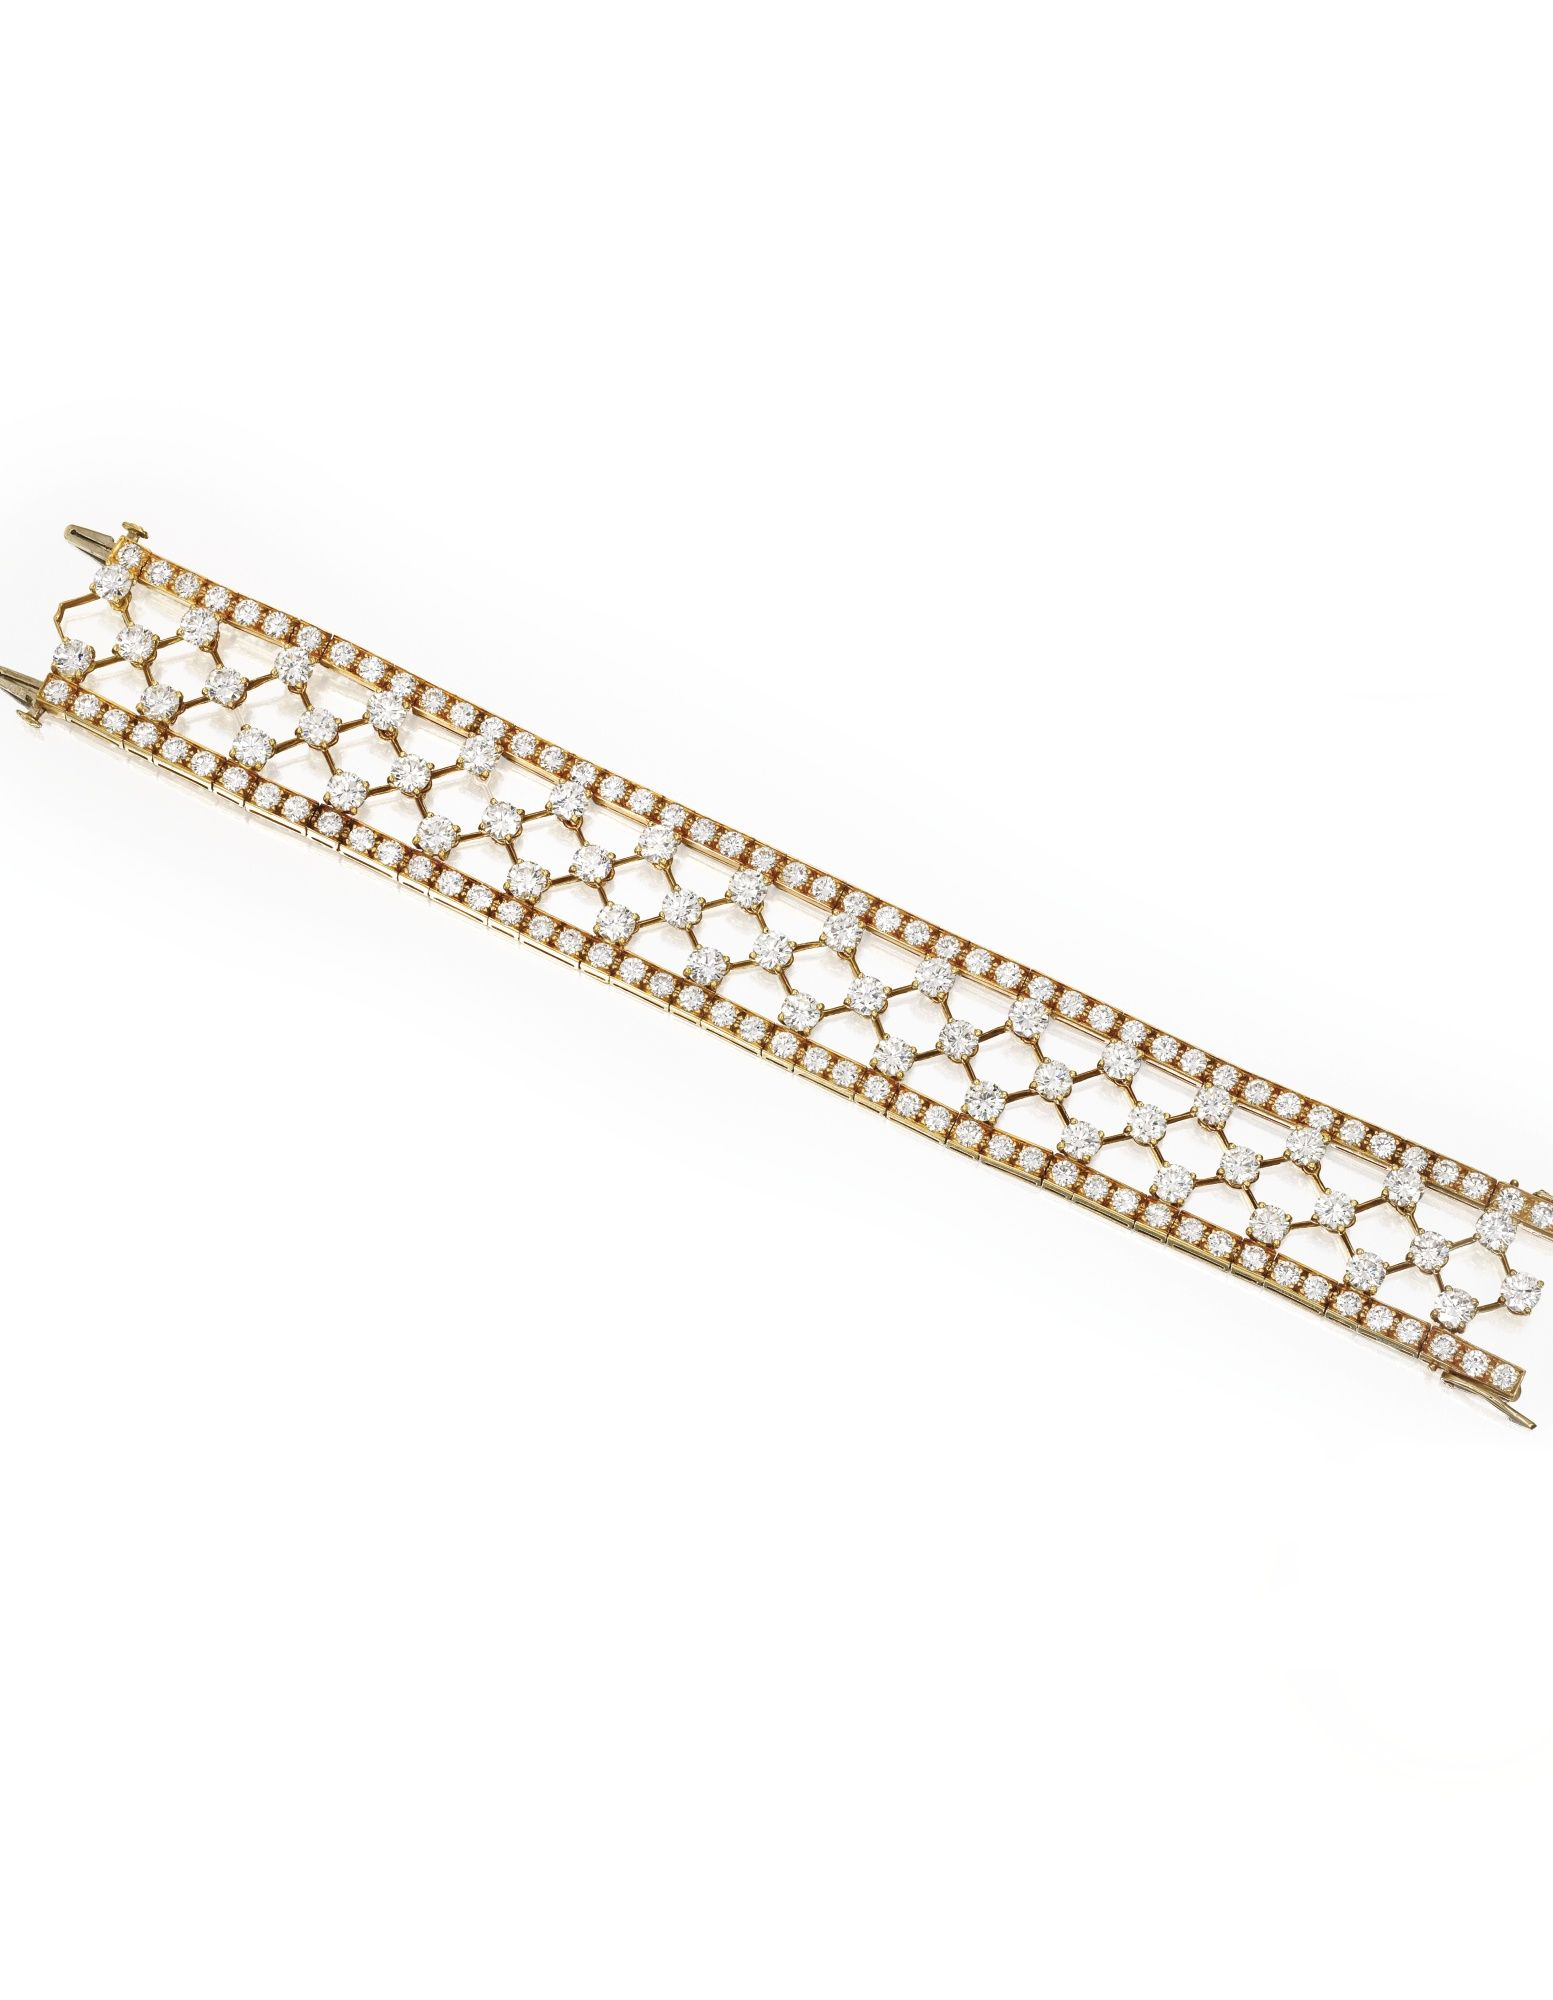 karat gold and diamond usnowflakeu bracelet van cleef u arpels